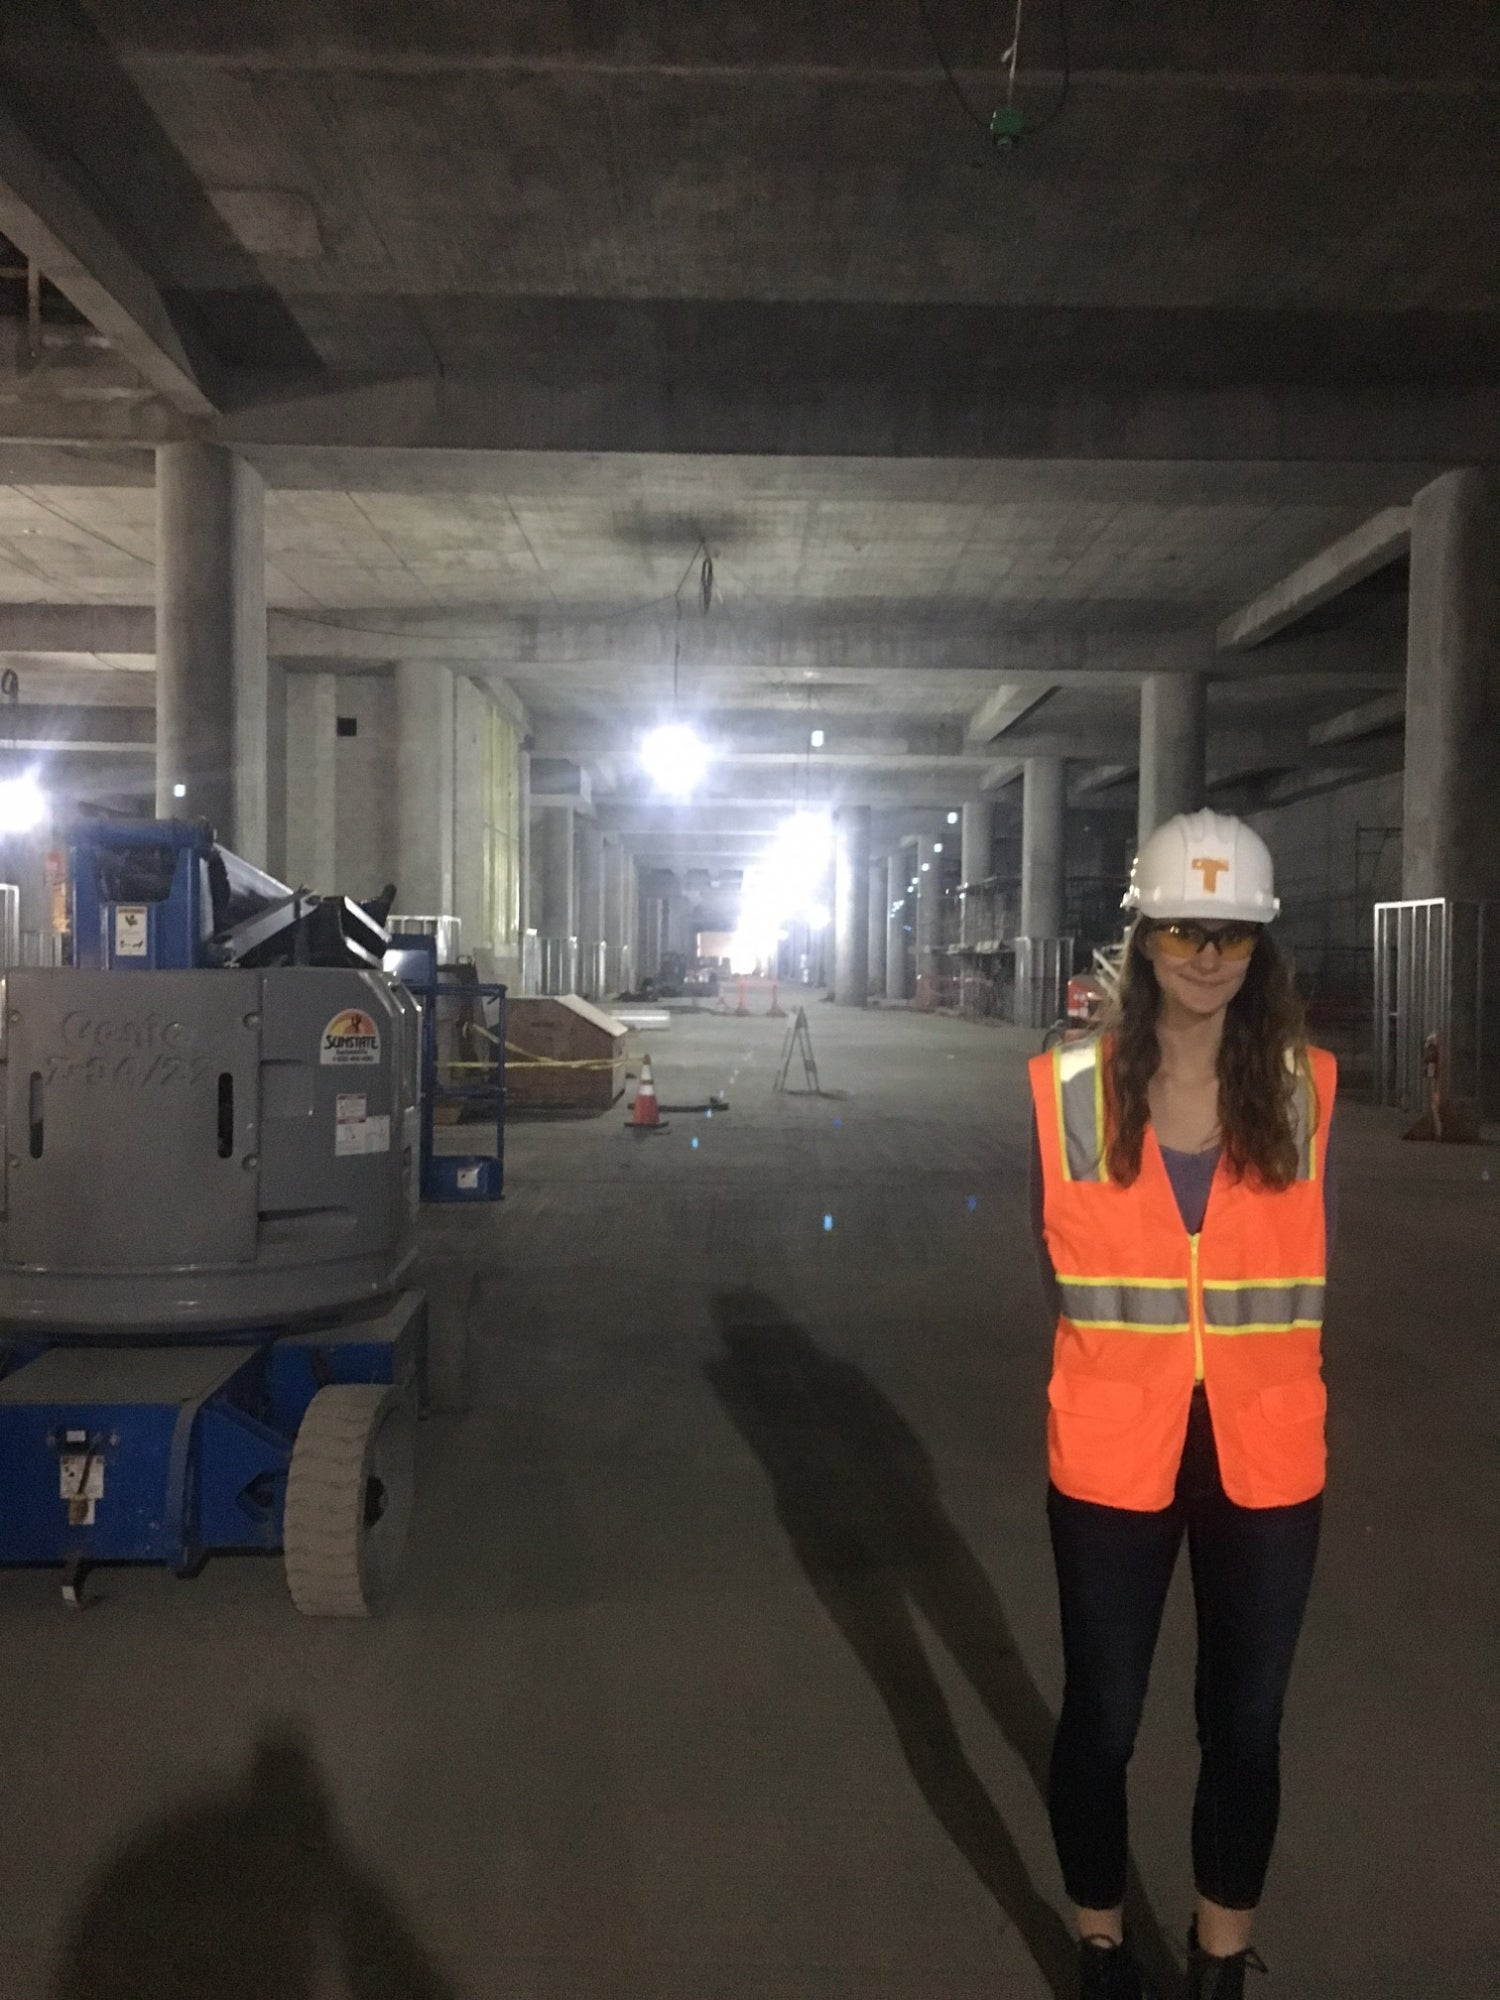 Madeline H. O'Donnell, Intern for Transbay Joint Powers Authority, County of San Francisco